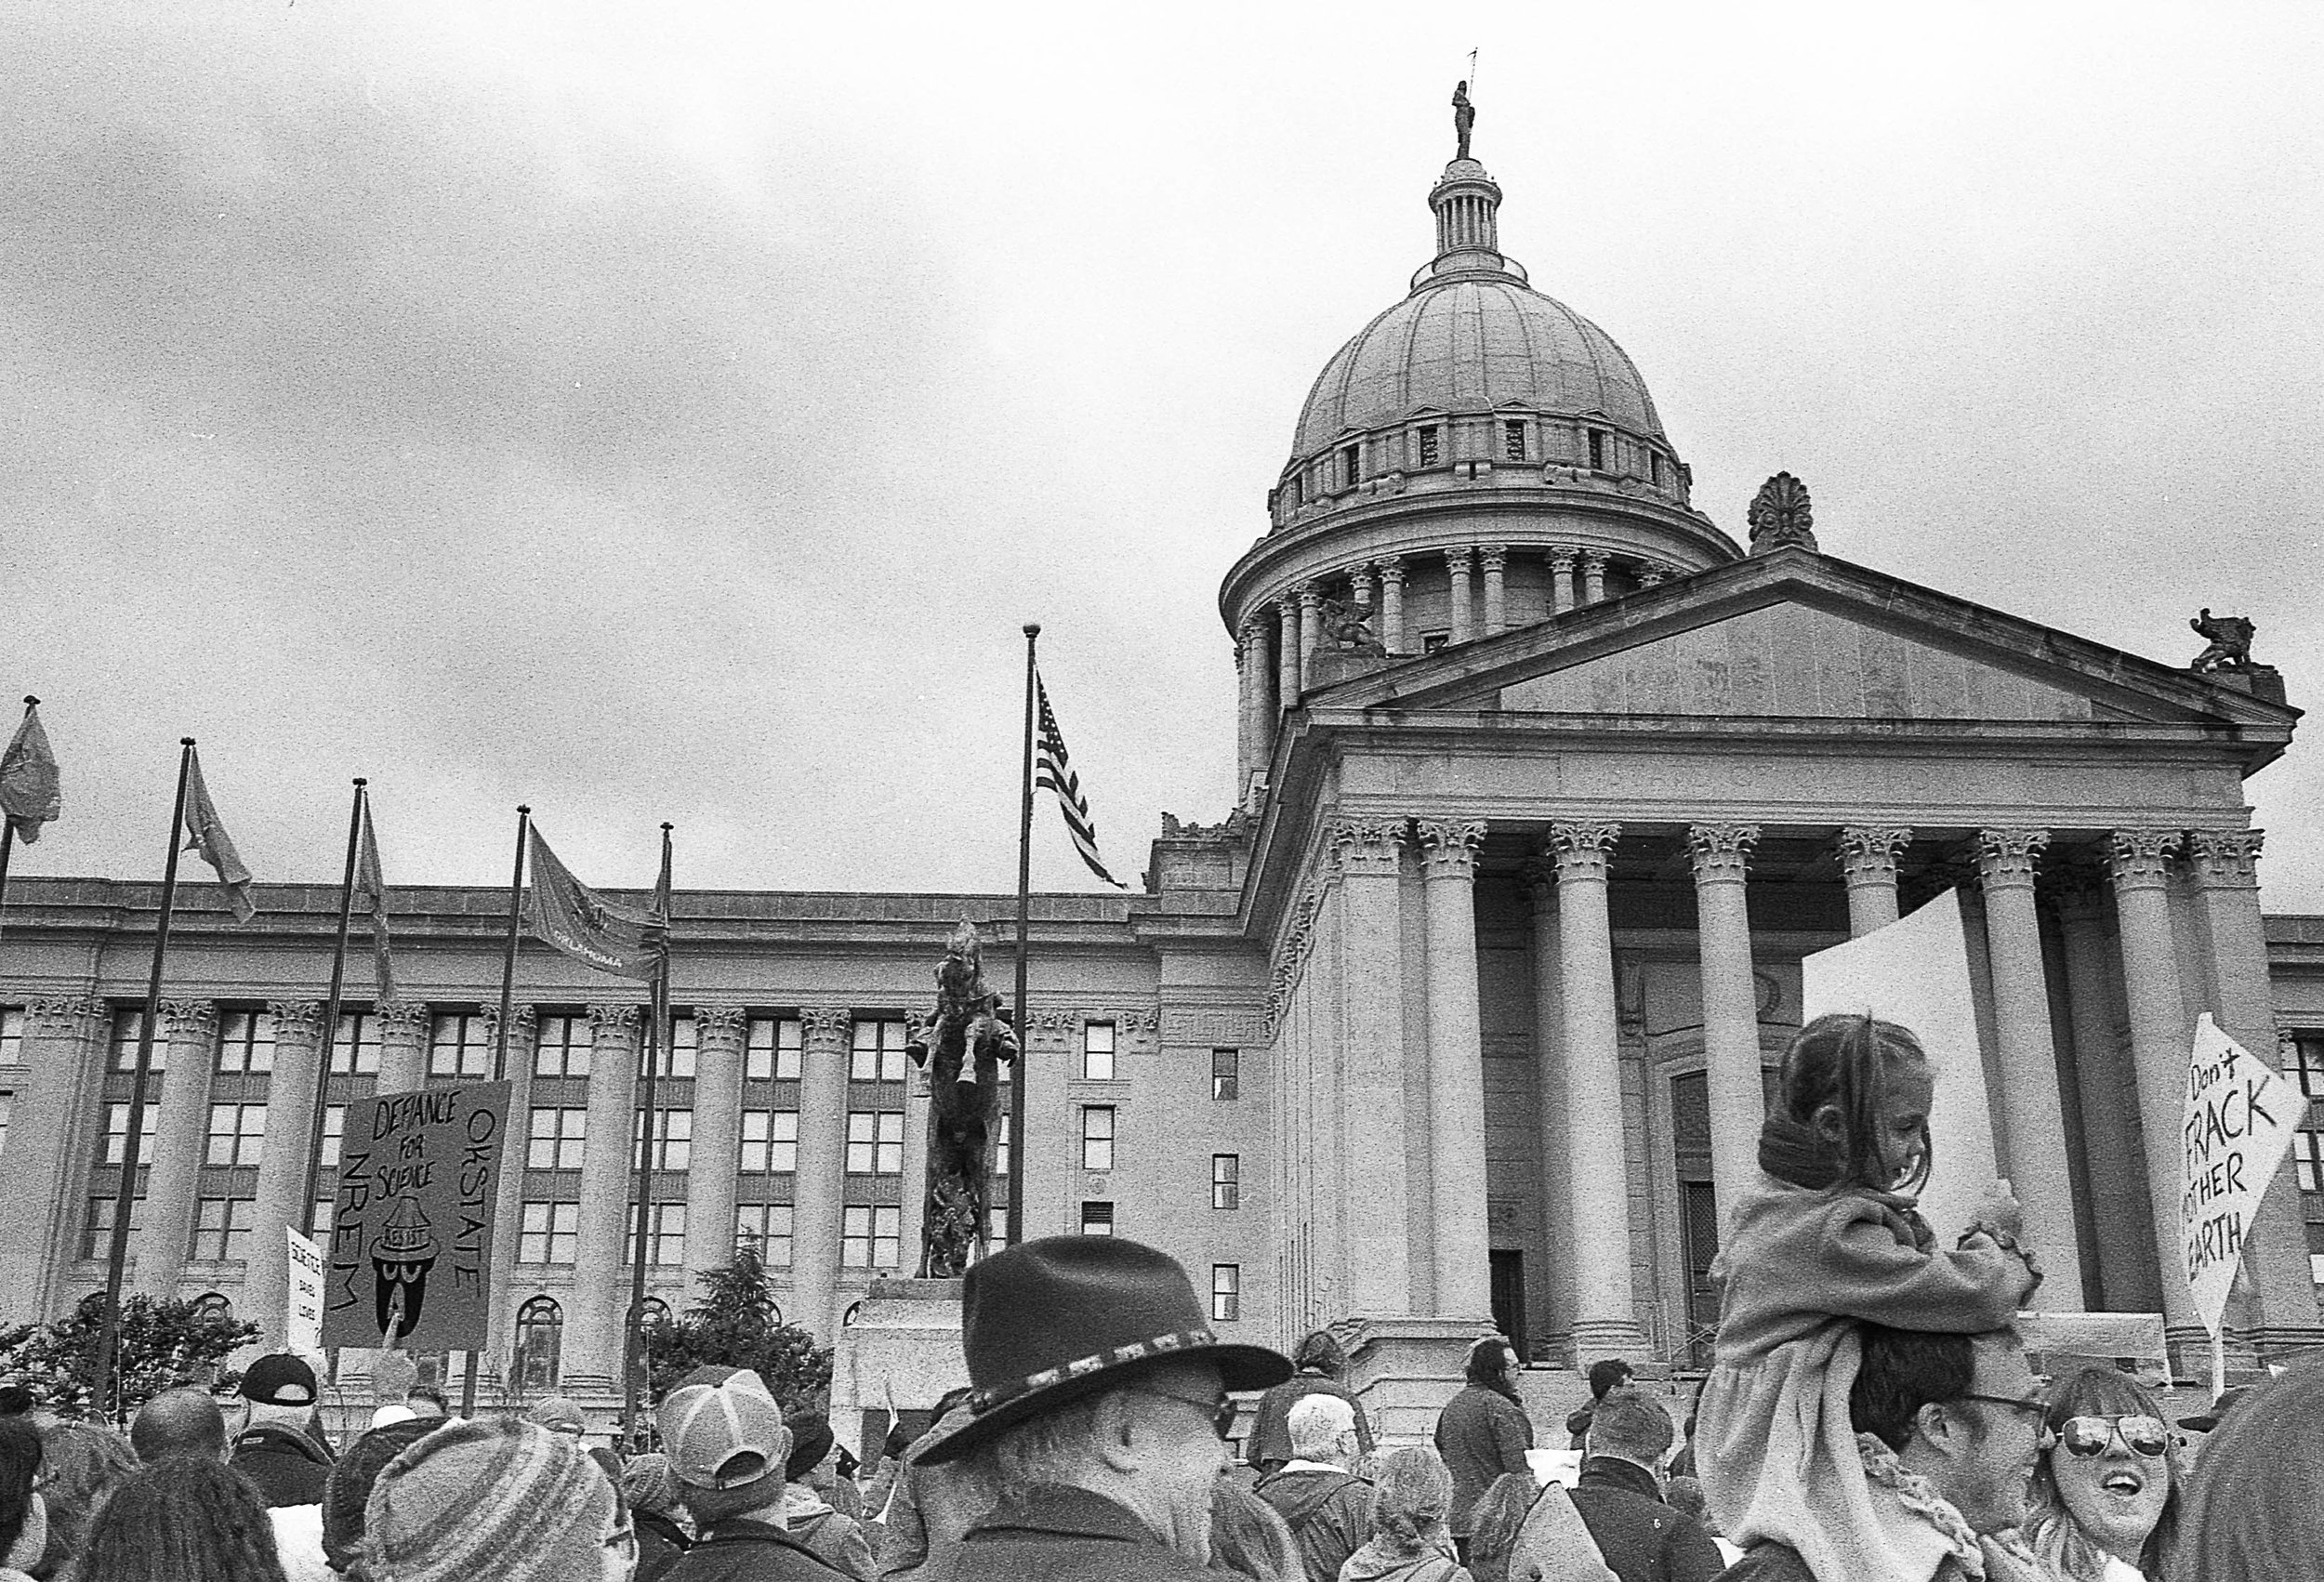 Approximately 5,000 showed up to support science at our local march in Oklahoma City. It was all but ignored by the local media, naturally.